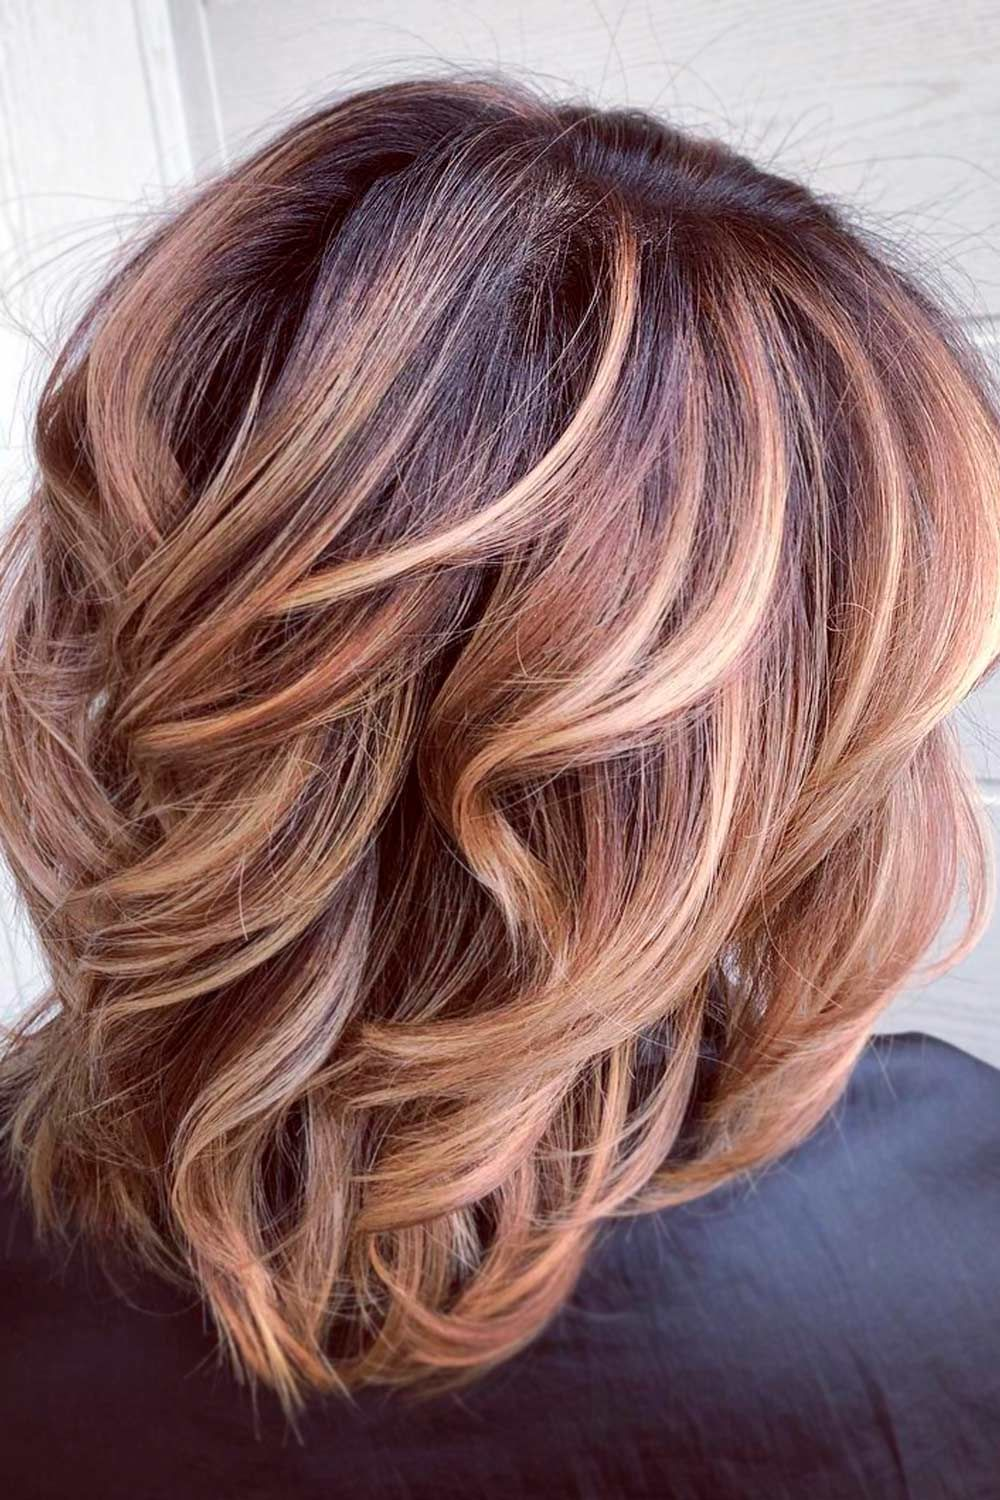 Wavy Highlighted Lob, wavy lob with bangs, textured long bob, shoulder length lob